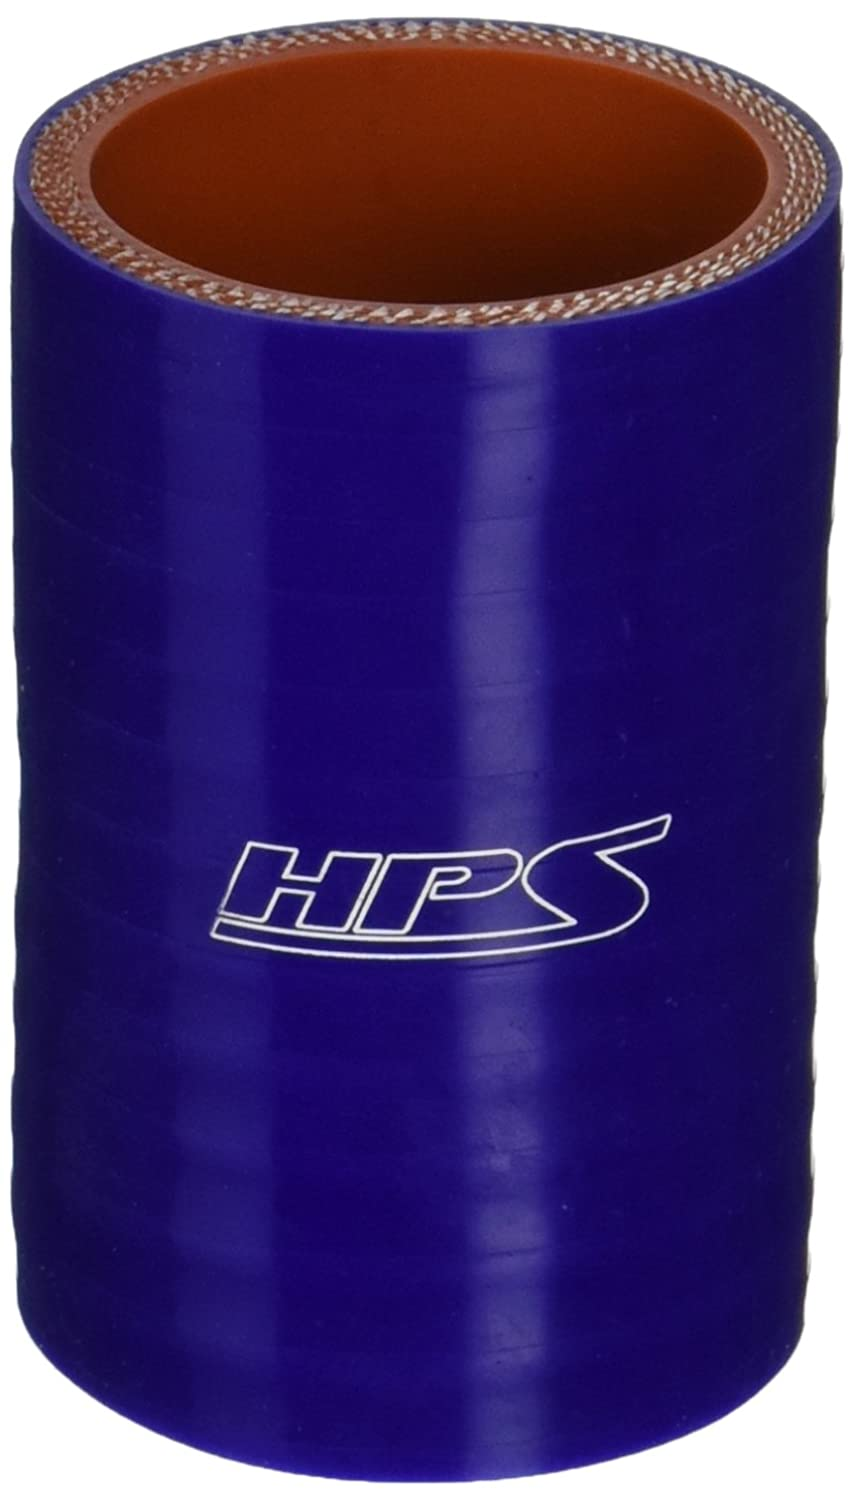 HPS HTSC-162-BLUE Silicone High Temperature 4-ply Reinforced Straight Coupler Hose, 100 PSI Maximum Pressure, 3' Length, 1-5/8' ID, Blue 3 Length 1-5/8 ID HPS Silicone Hoses